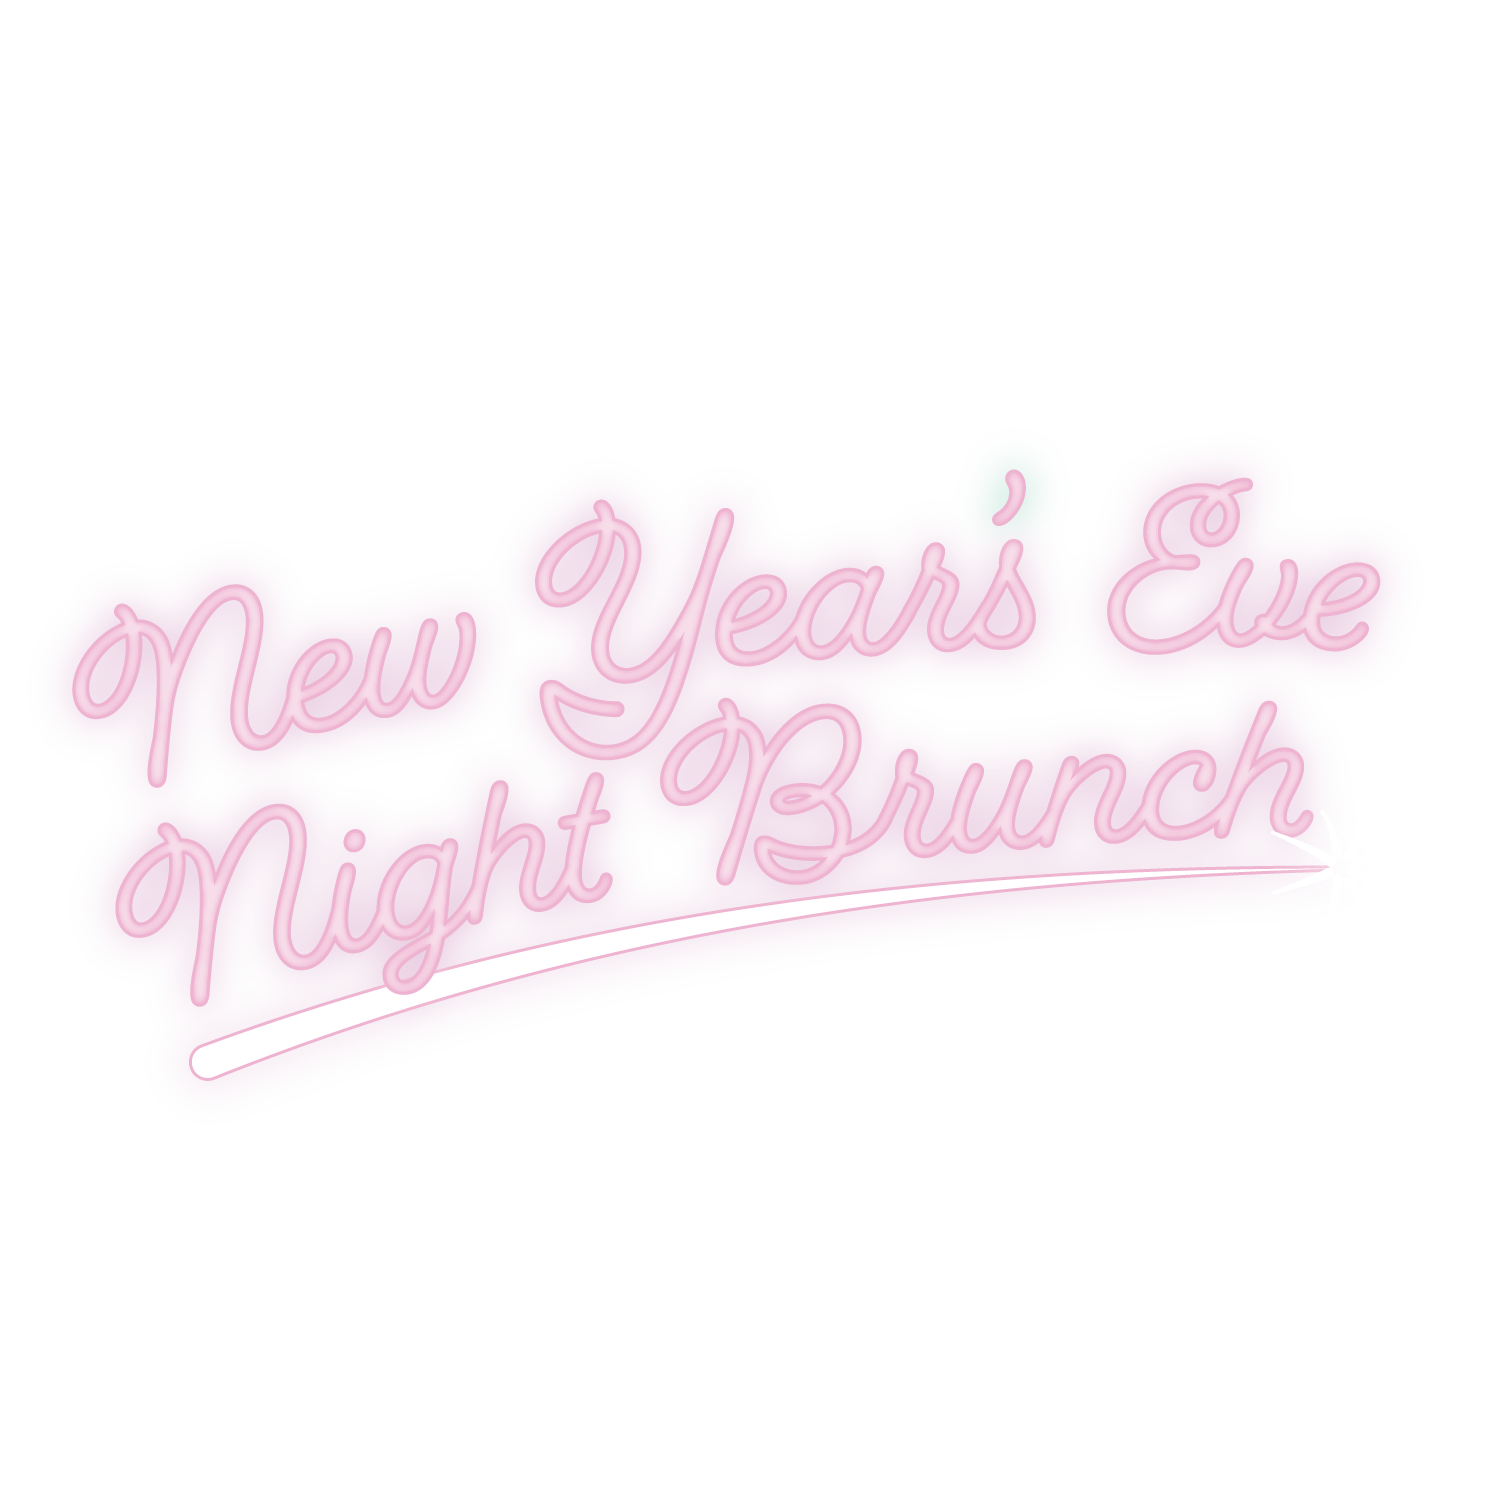 HUCKSTER West London Paddington New Year's Eve Night Brunch Party 2020